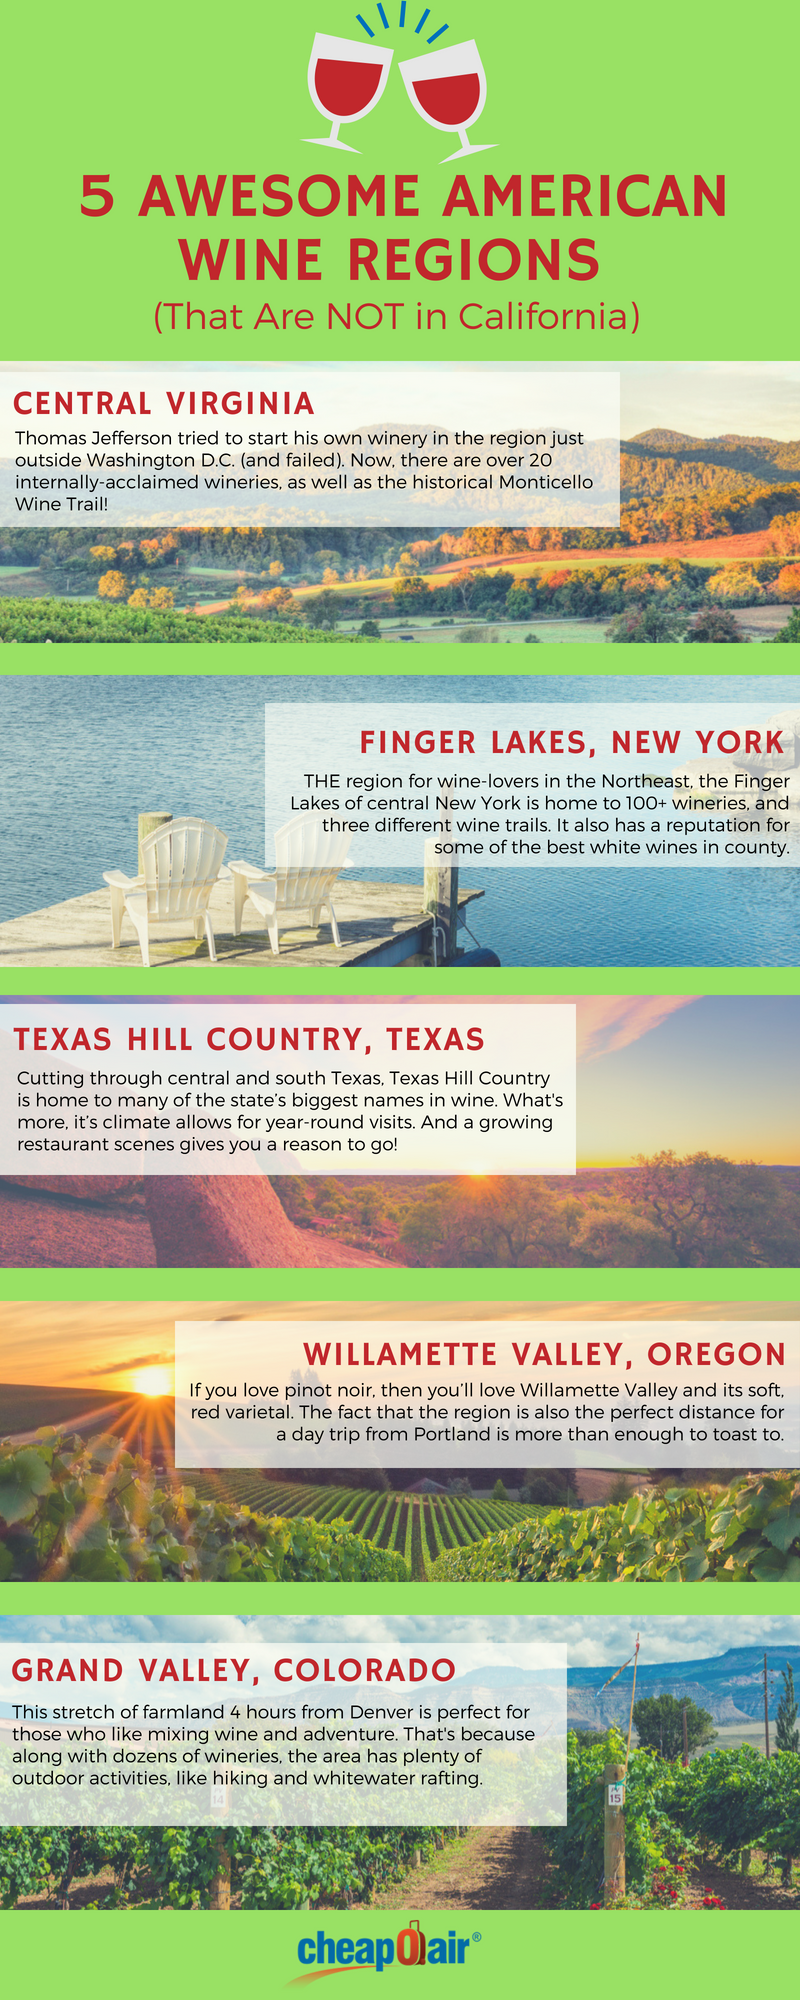 awesome american wine regions (that are NOT) in California